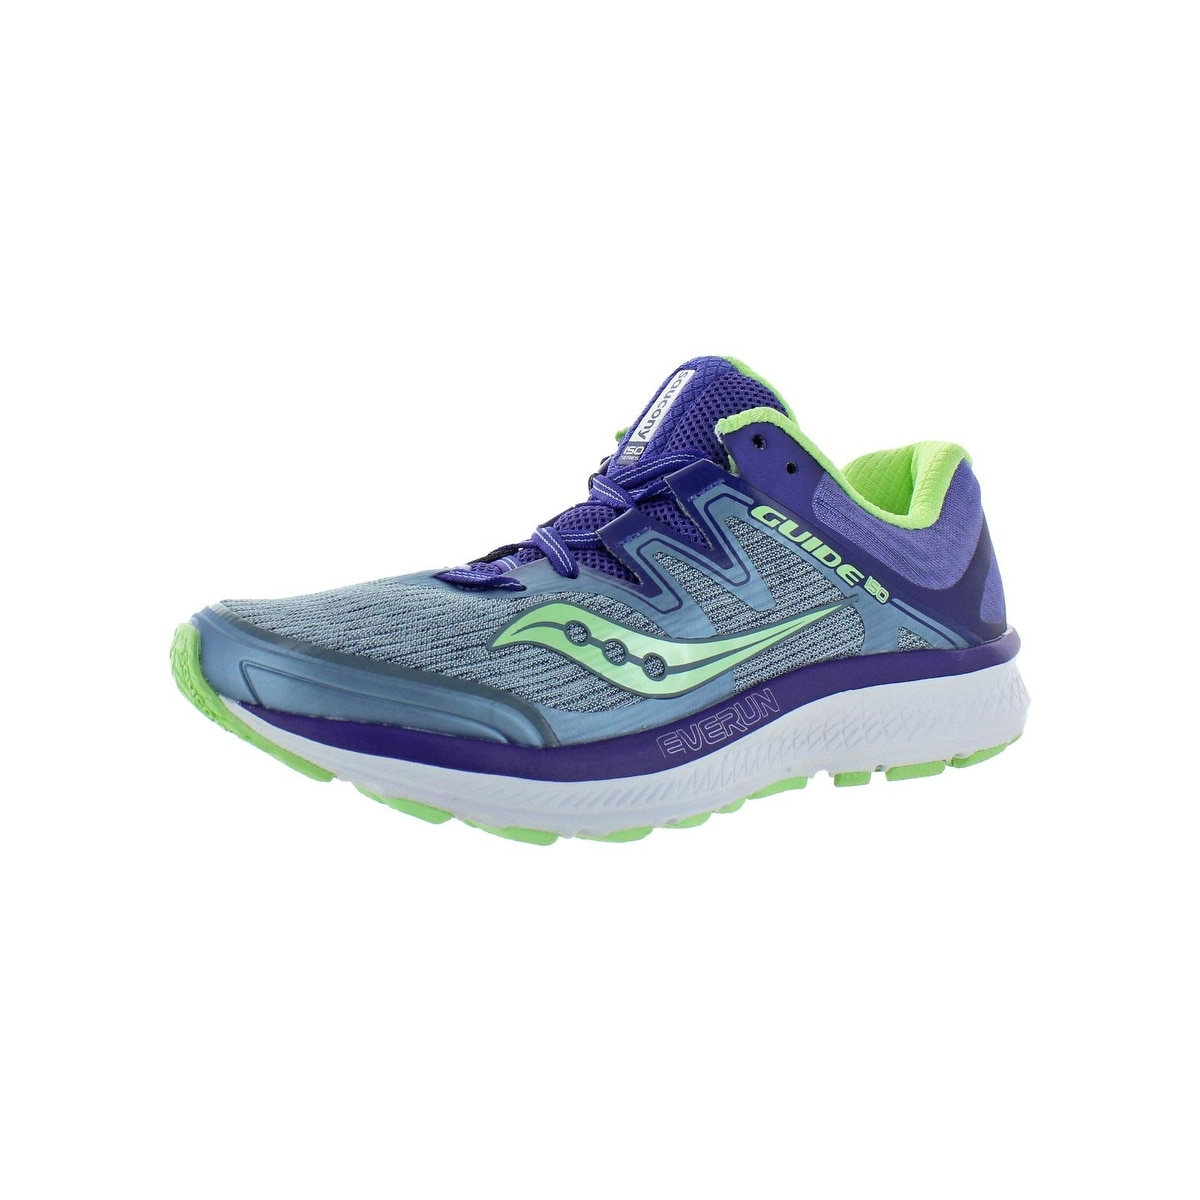 Saucony Women's Shoes | Find Great Shoes Deals Shopping at